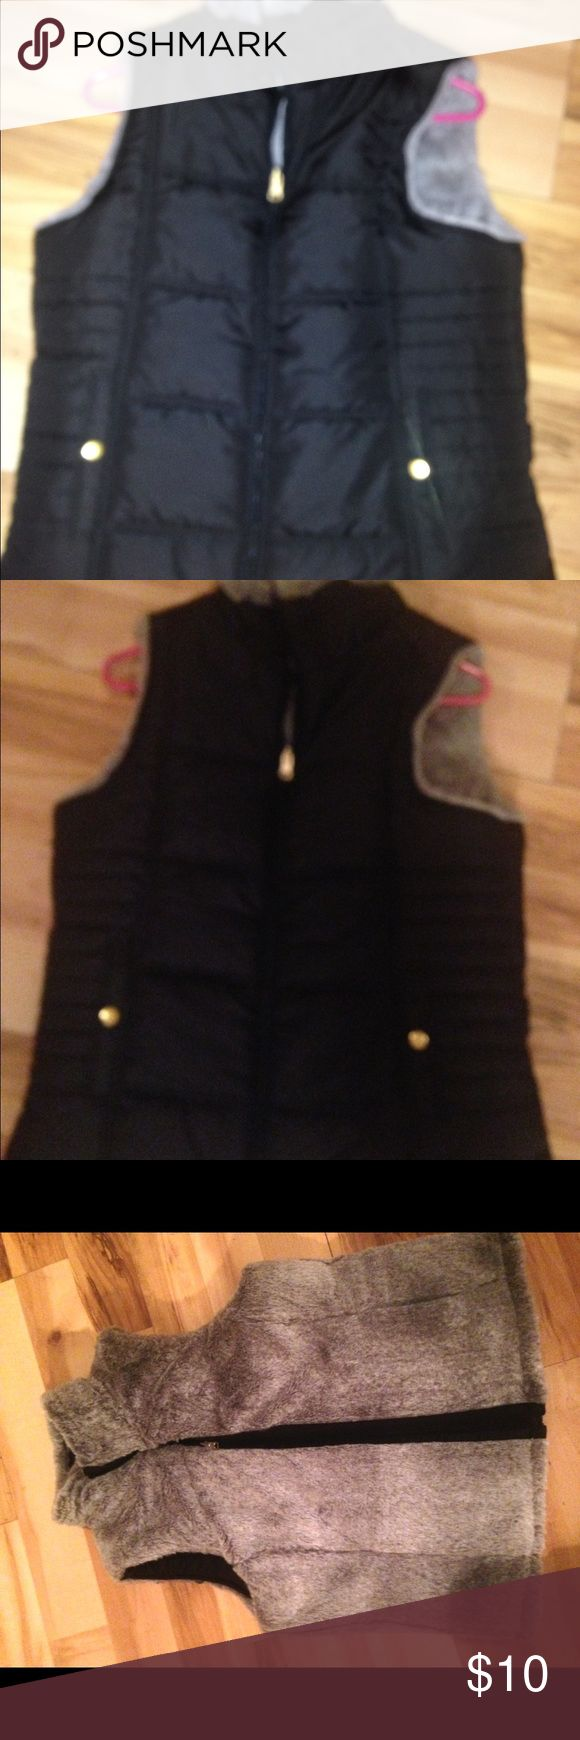 Women's vest puffy vest puffer vest Brand new purchased from goodies paid $80- reversible (shown in photos) can wear it on either side. Fits small and medium best! Pair it with some cute boots and you are good to go ;) Jackets & Coats Puffers